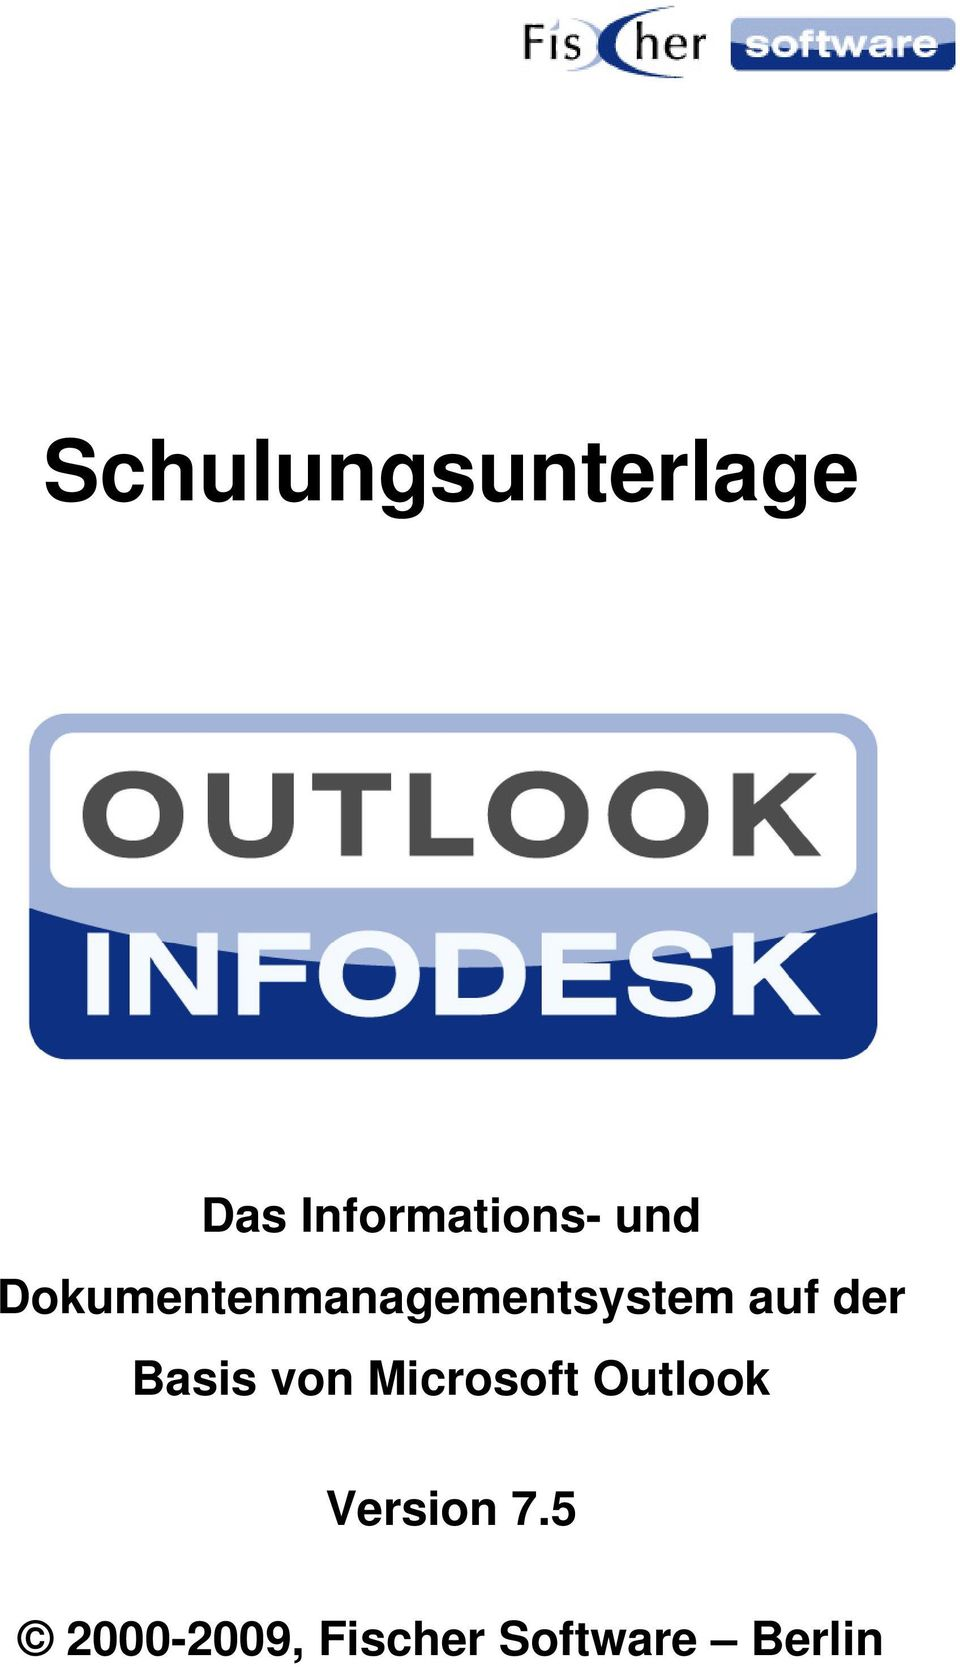 der Basis von Microsoft Outlook